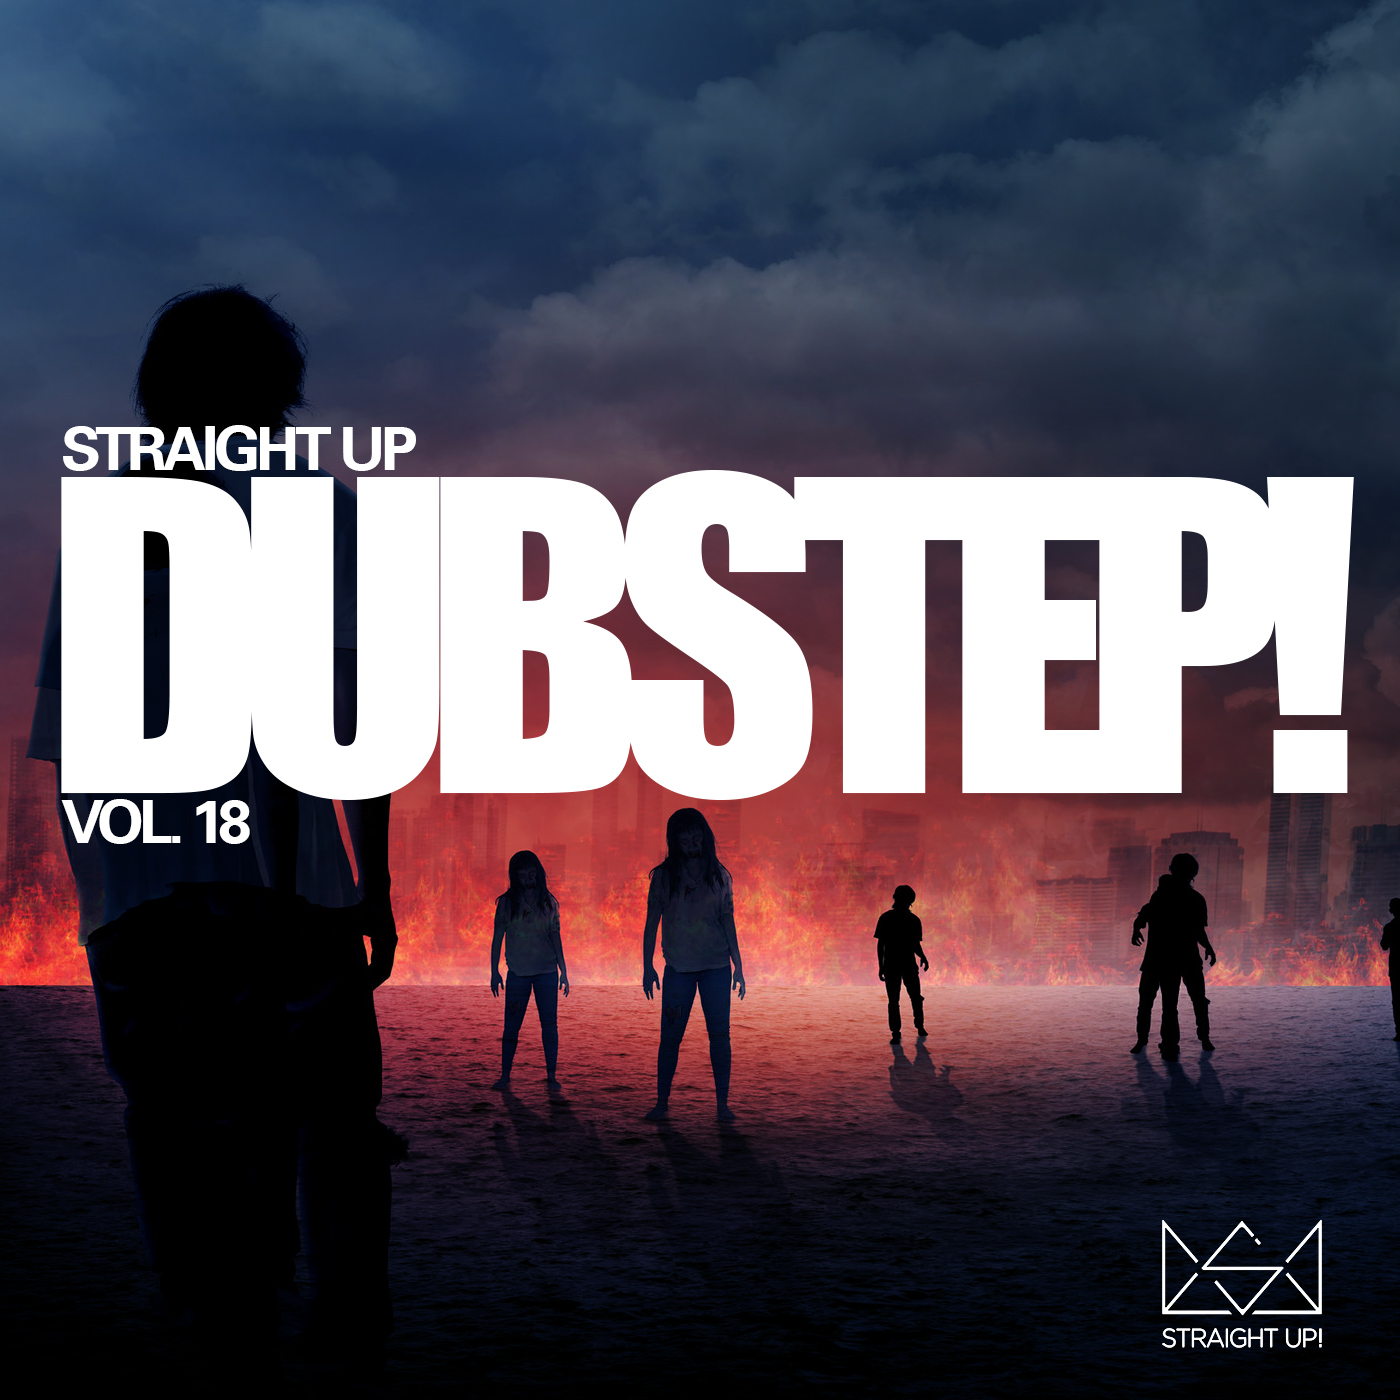 Straight Up Dubstep! Vol. 18